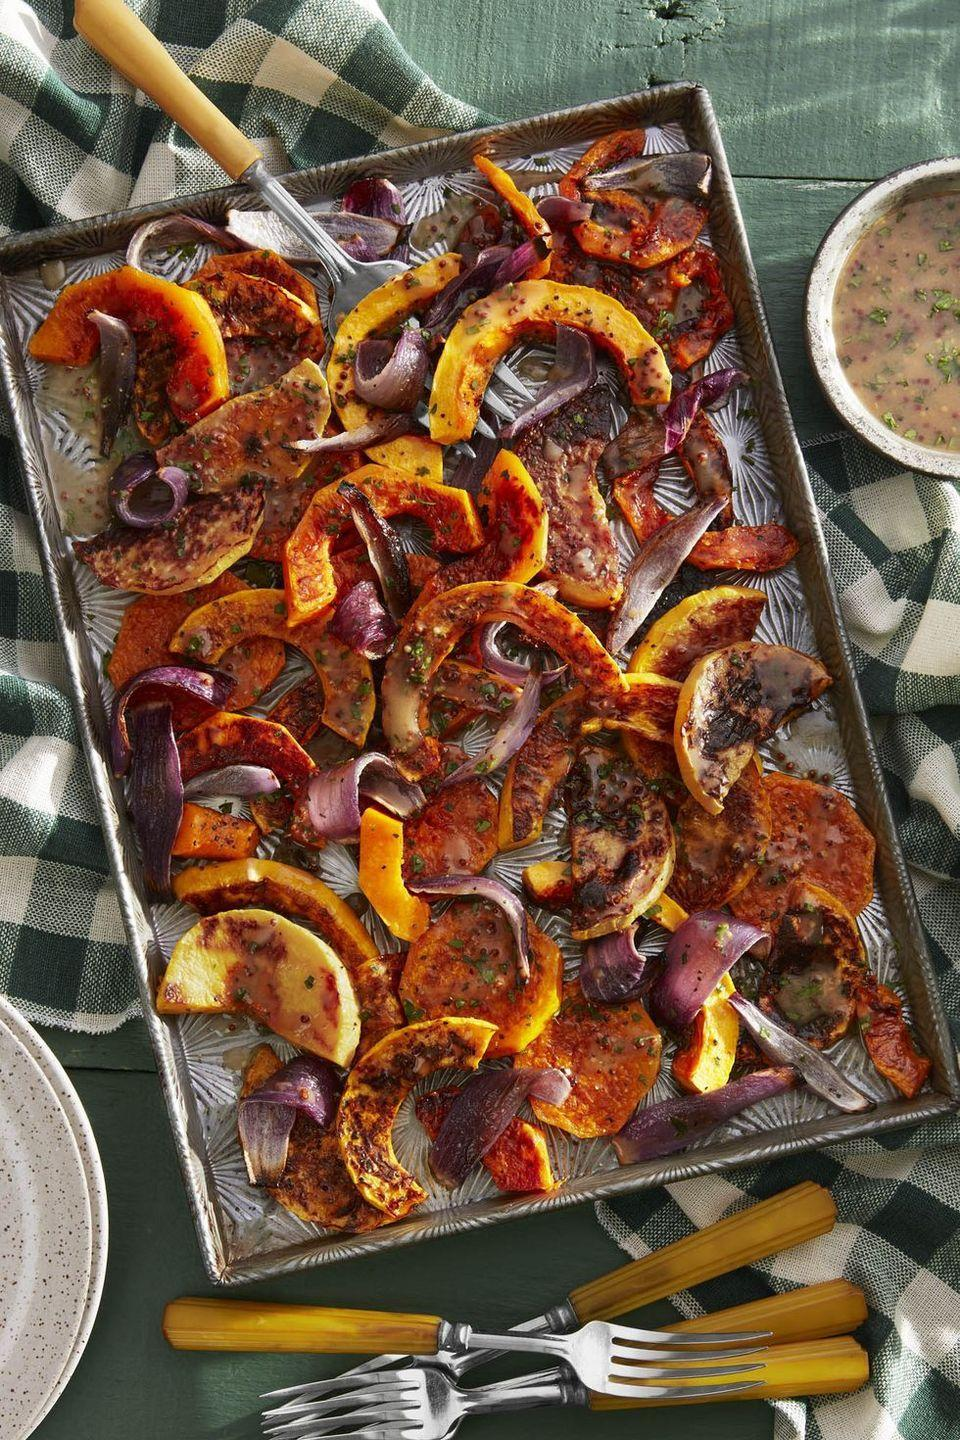 """<p>Whole grain mustard and red onion give this dish some serious flavor, while apple cider sweetens it up just enough. It's a must-have in any healthy recipe arsenal.</p><p><strong><a href=""""https://www.countryliving.com/food-drinks/a23367748/roasted-butternut-squash-with-cider-vinaigrette-recipe/"""" rel=""""nofollow noopener"""" target=""""_blank"""" data-ylk=""""slk:Get the recipe"""" class=""""link rapid-noclick-resp"""">Get the recipe</a>.</strong></p><p><a class=""""link rapid-noclick-resp"""" href=""""https://www.amazon.com/OXO-Piece-Grips-Wooden-Turner/dp/B00TIJJ5Q4?tag=syn-yahoo-20&ascsubtag=%5Bartid%7C10050.g.32934702%5Bsrc%7Cyahoo-us"""" rel=""""nofollow noopener"""" target=""""_blank"""" data-ylk=""""slk:SHOP WOODEN SPOONS"""">SHOP WOODEN SPOONS</a></p>"""